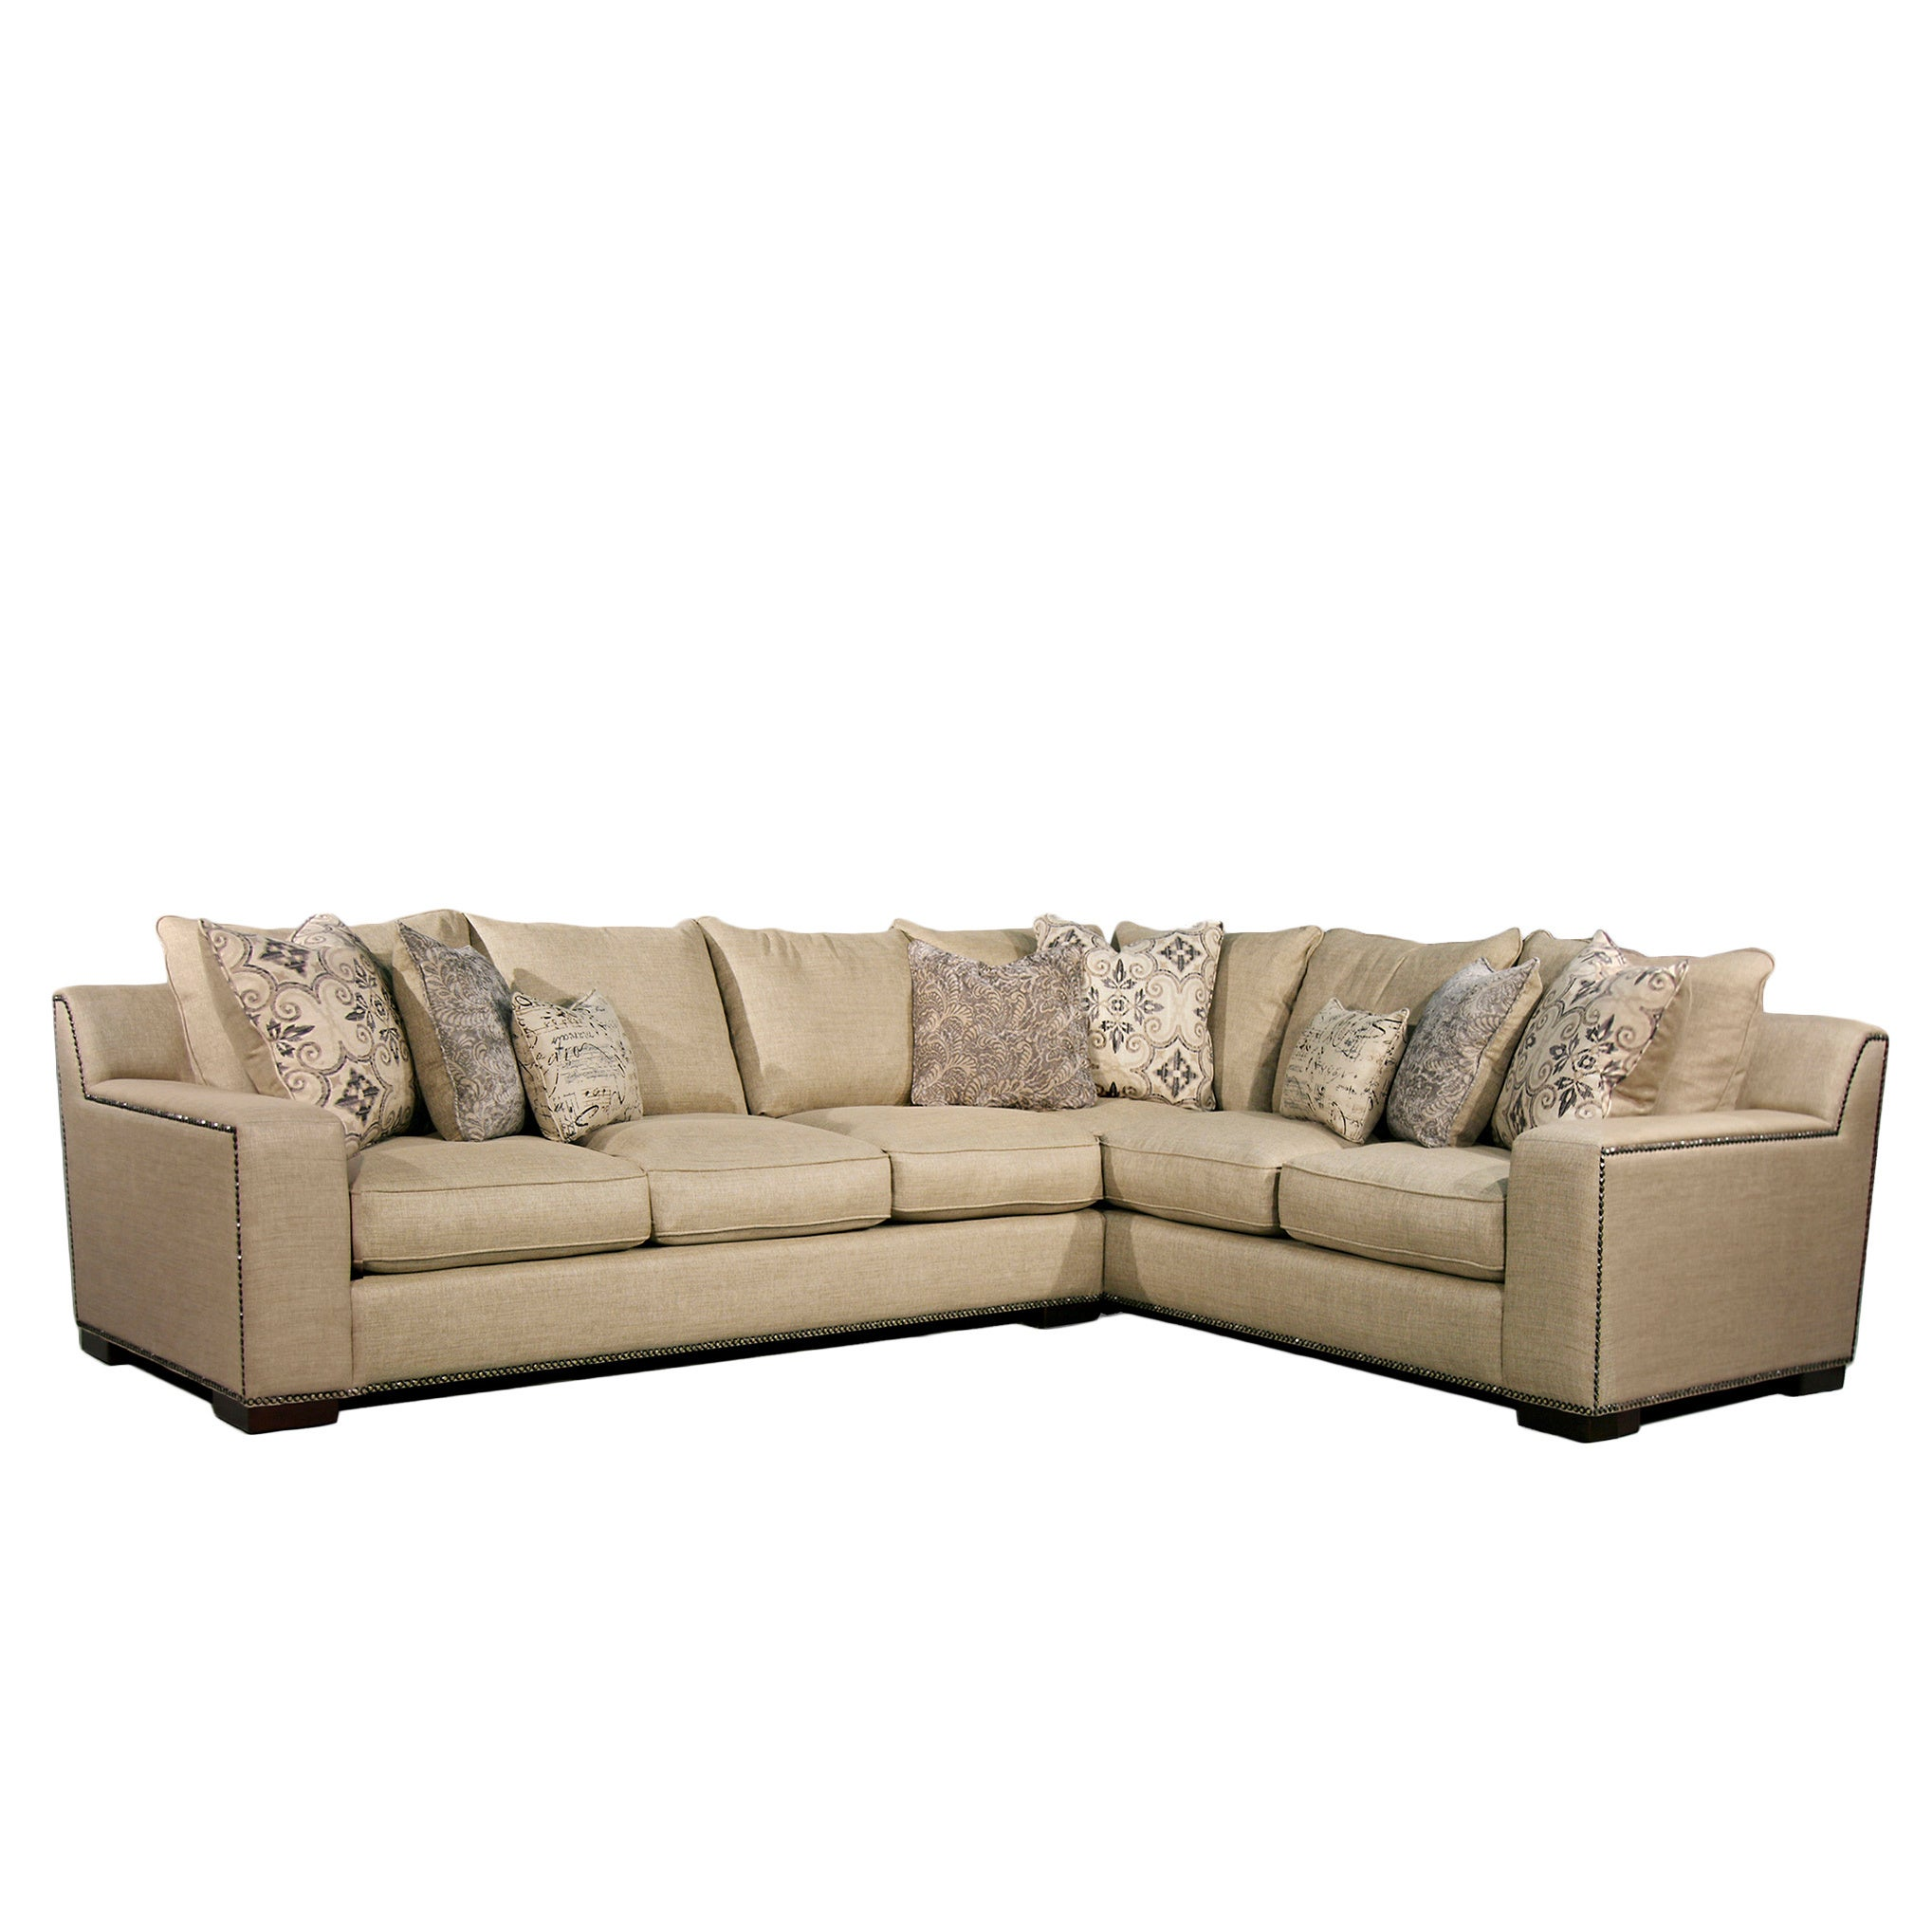 Super Fairmont Designs Made To Order Adele Two Piece Sectional Set Ncnpc Chair Design For Home Ncnpcorg